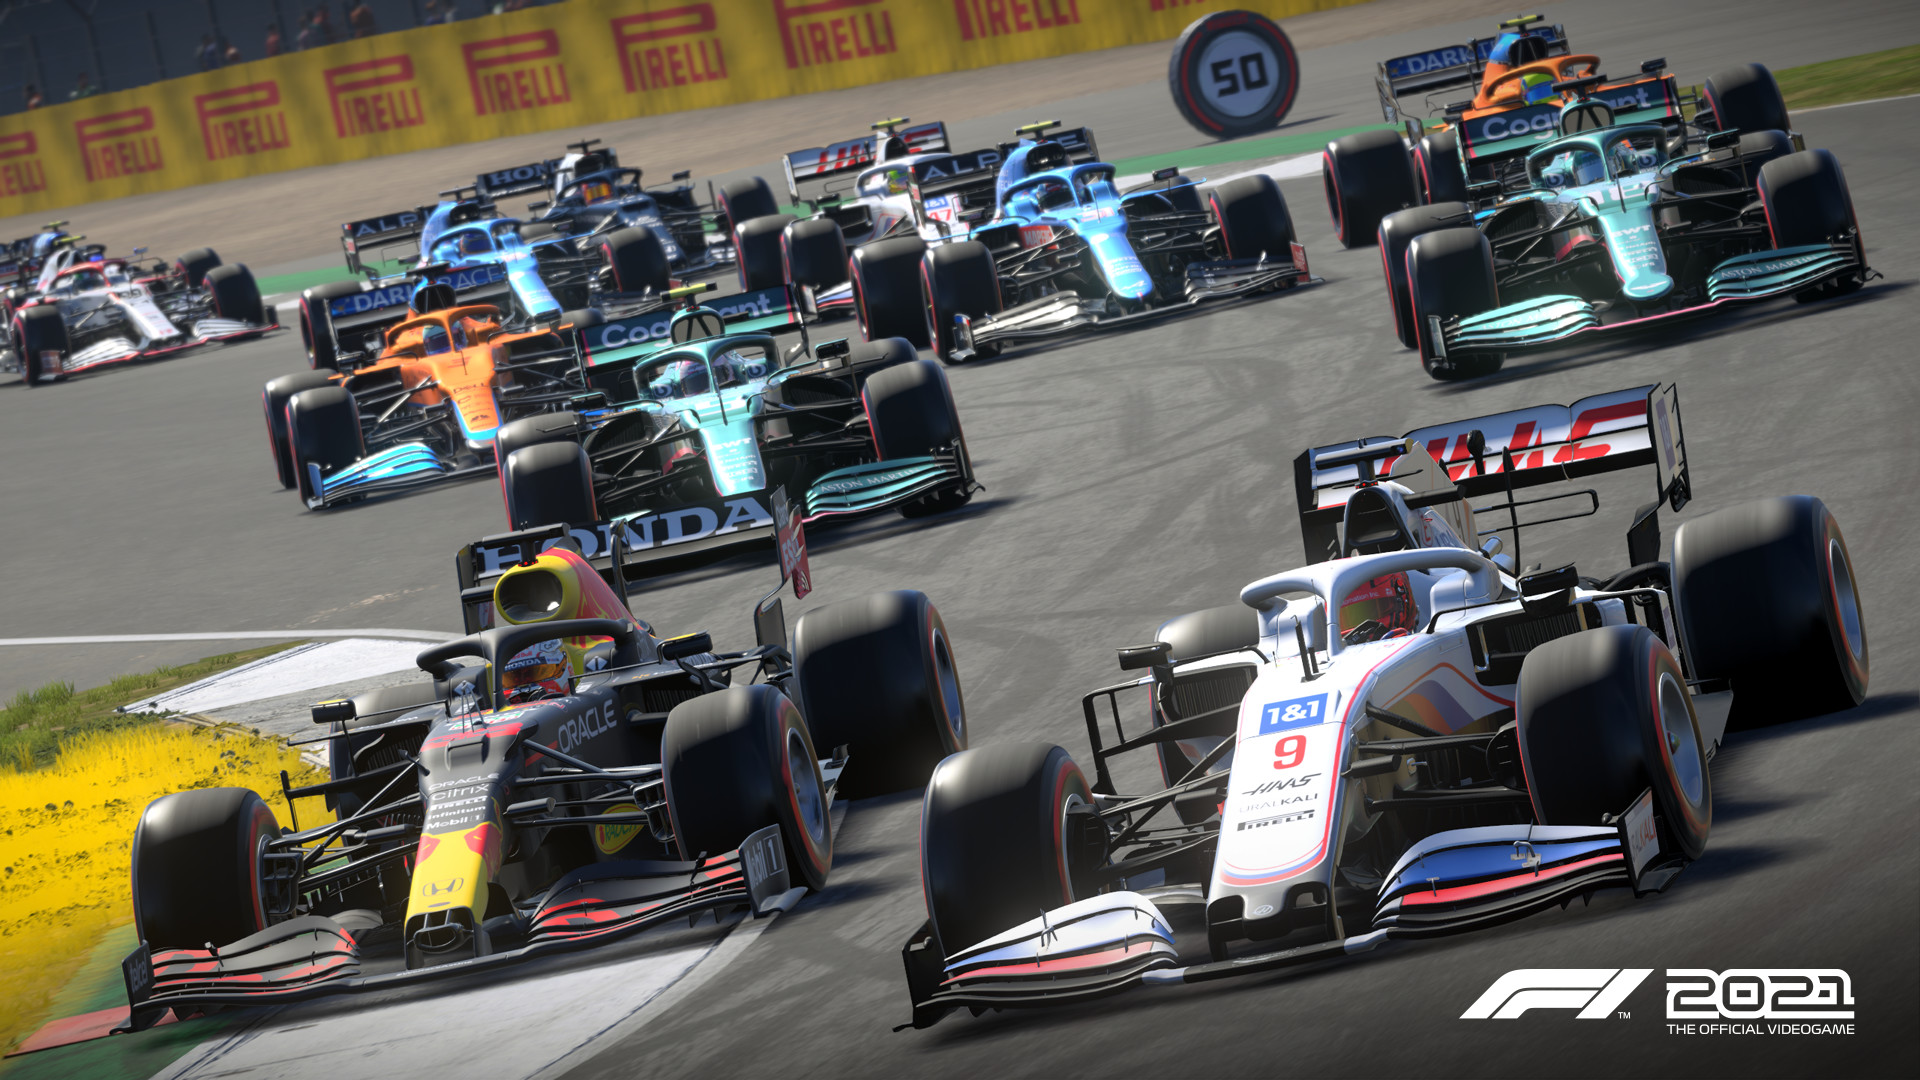 F1 Game Review 2021 - F1 Racing